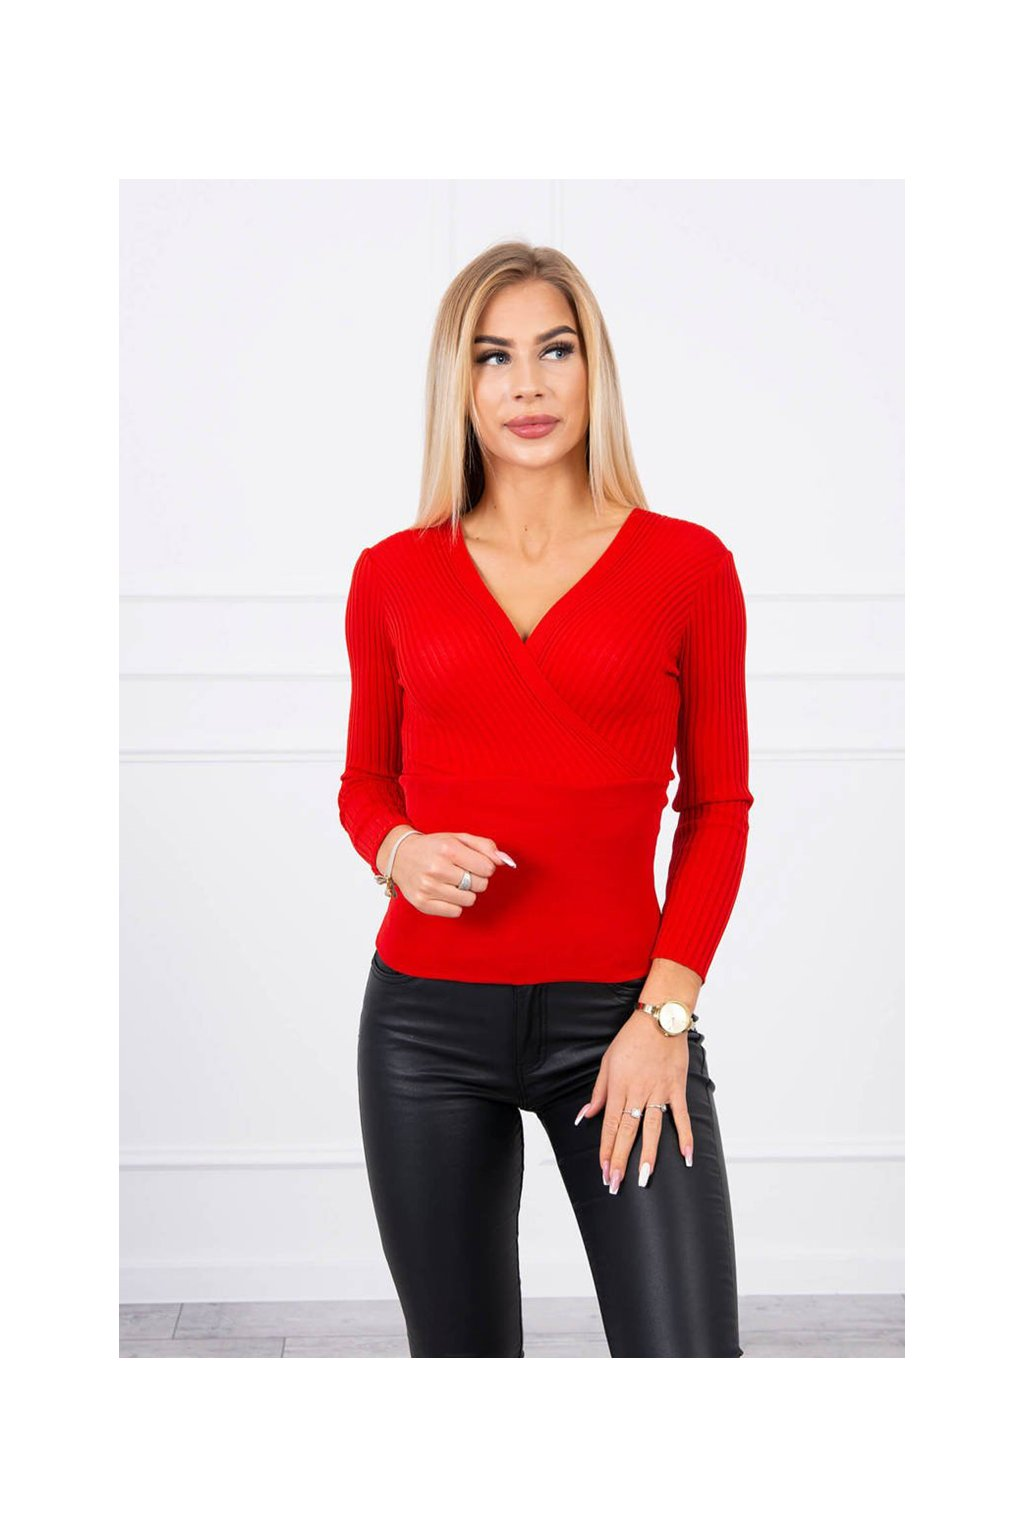 eng pl Thin sweater with a V neck red 19281 1